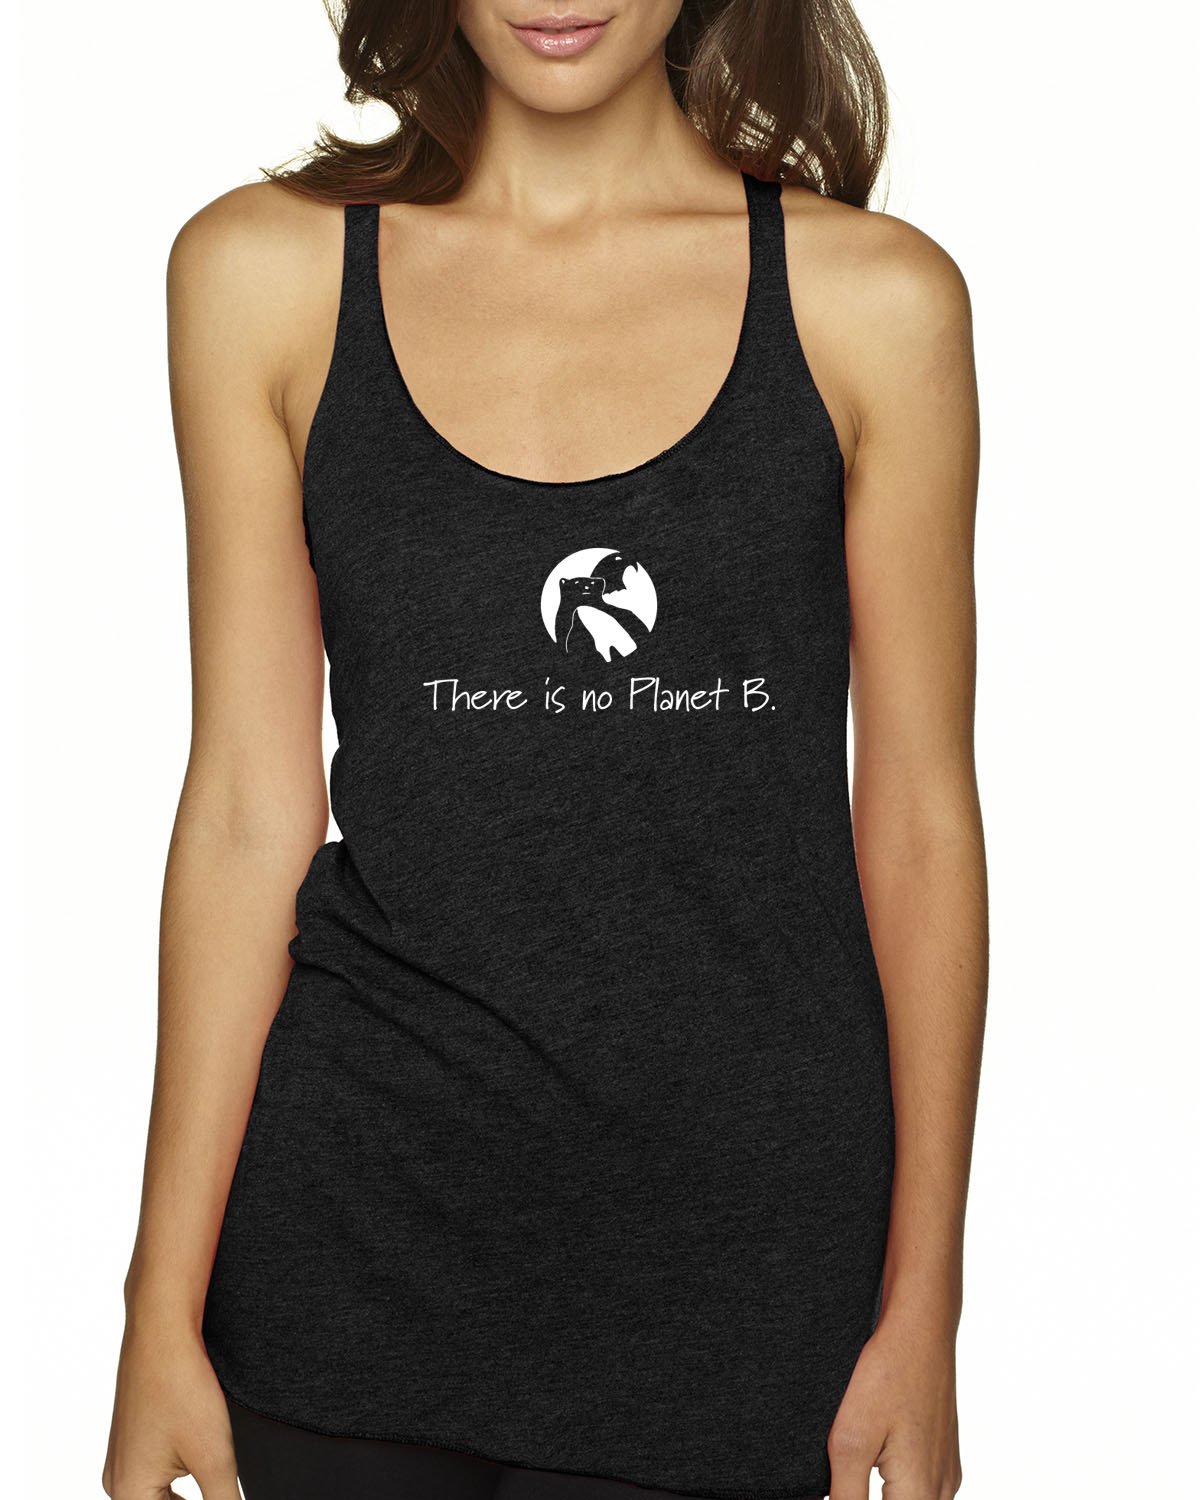 There is No Planet B tri-blend racer-back tank top (vintage black)